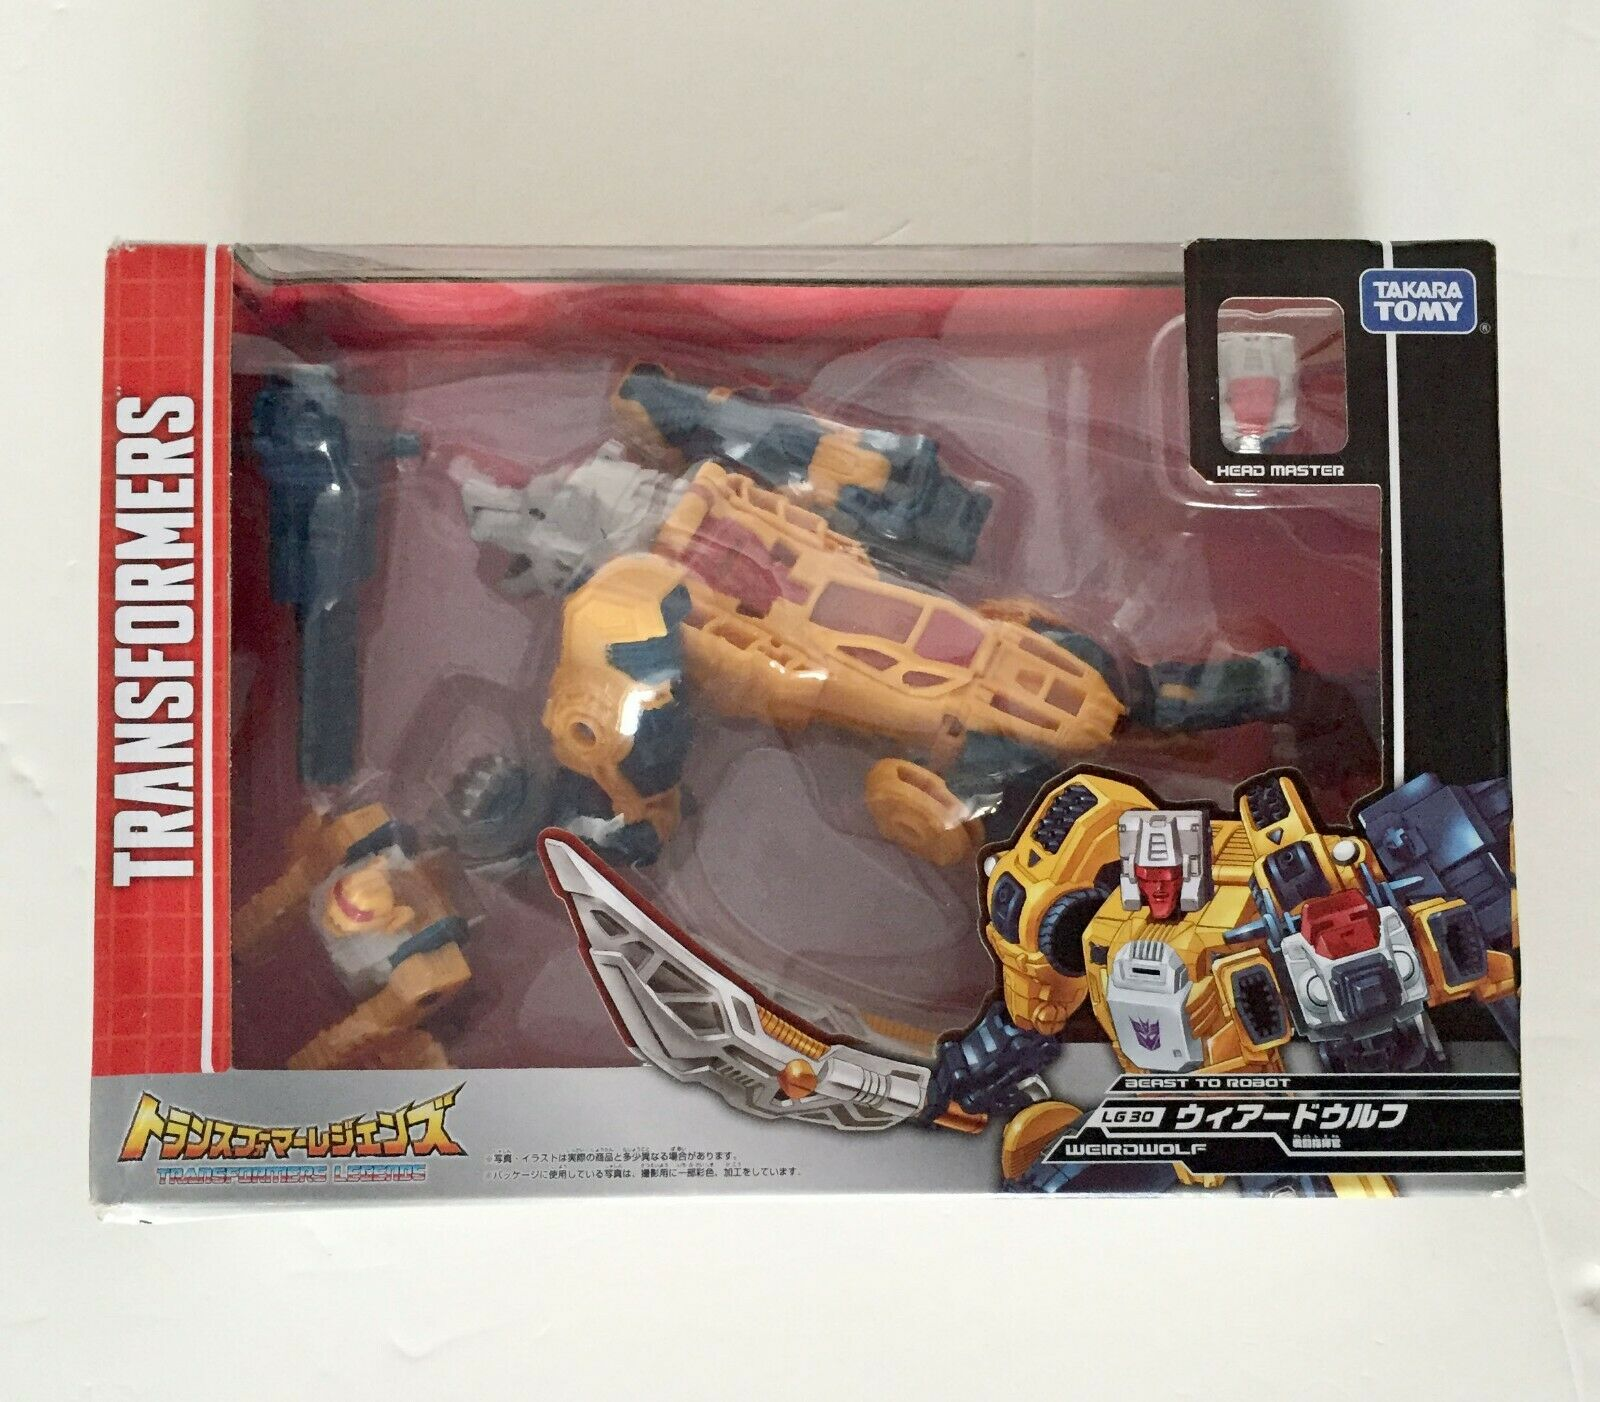 Transformers Takara Takara Takara Legends Titans Return LG30 Weirdwolf b92699